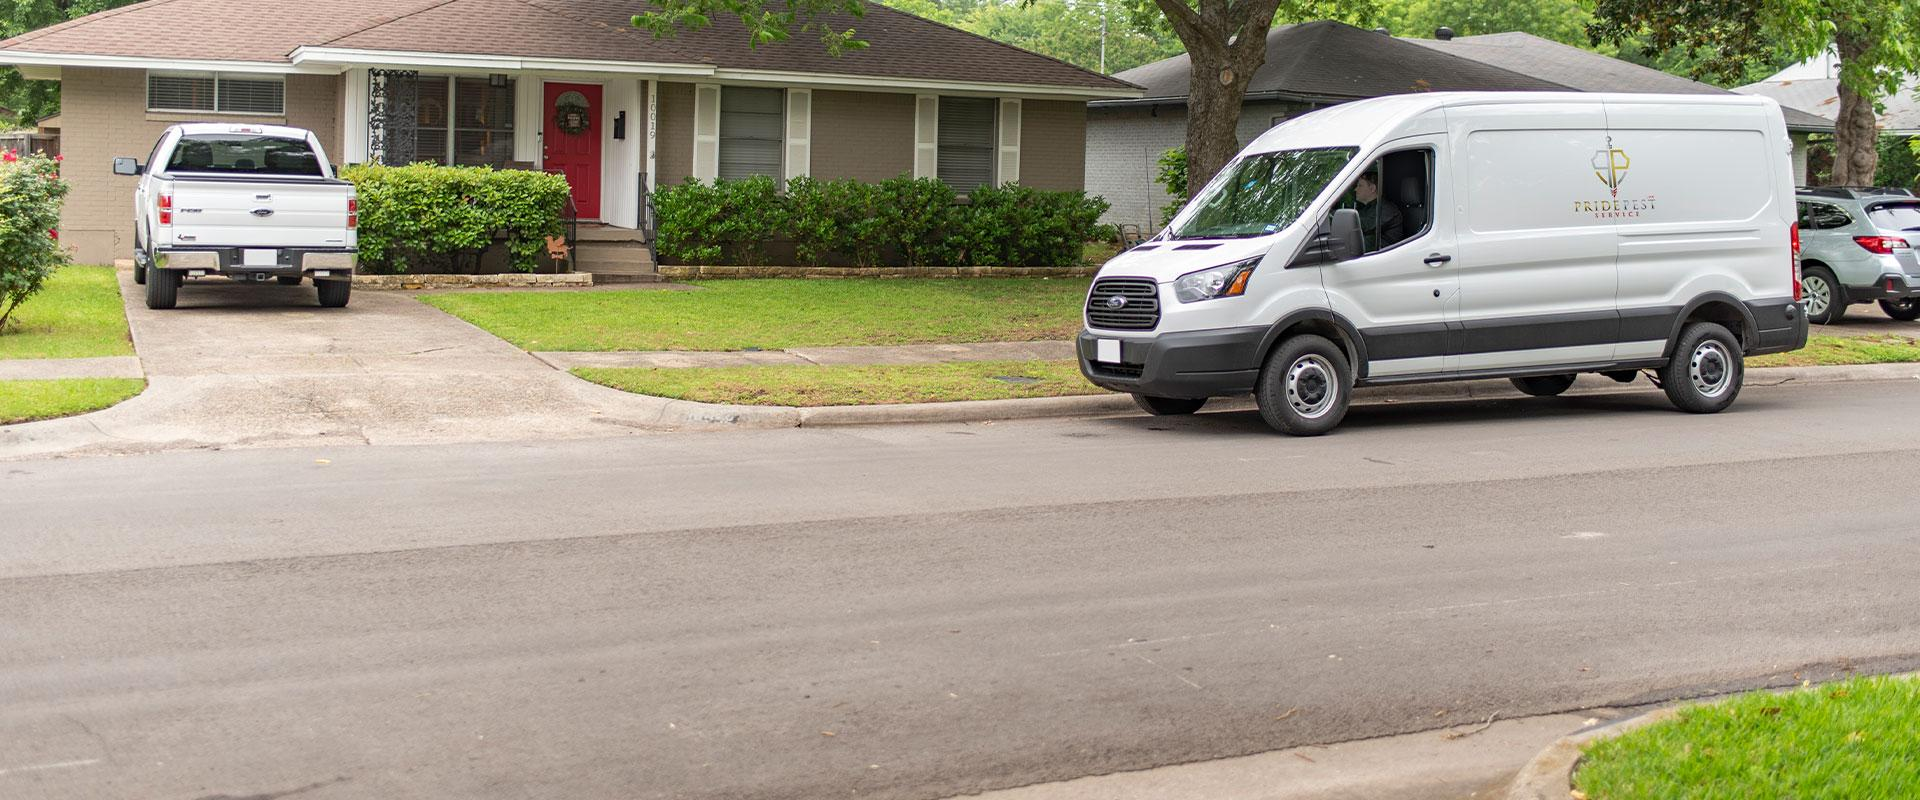 van pulling up to house